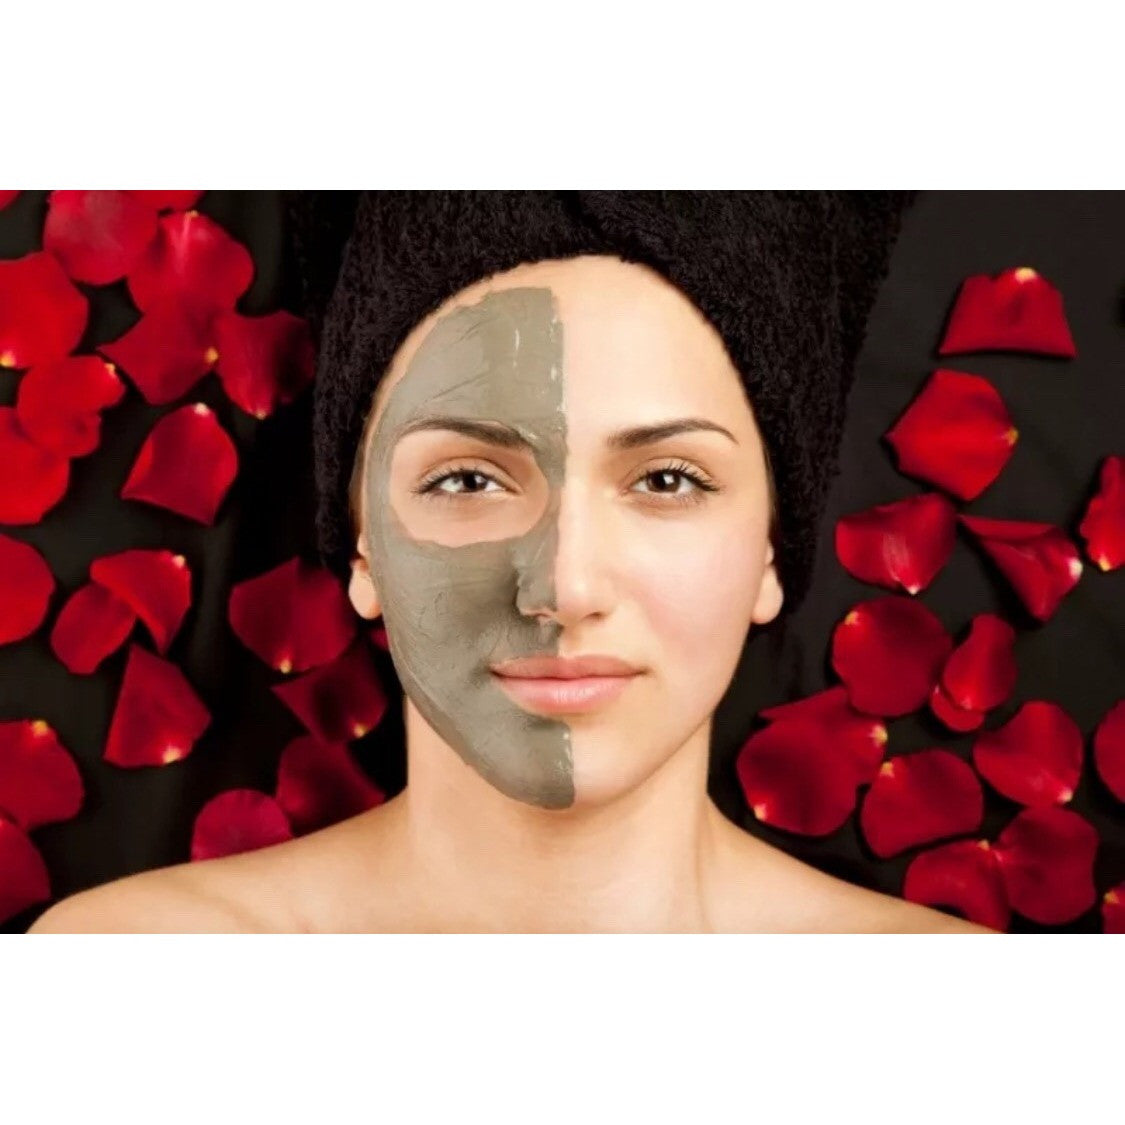 50 gm Fullers Earth Powder Skin Lightening Mud Masks - ModelSupplies